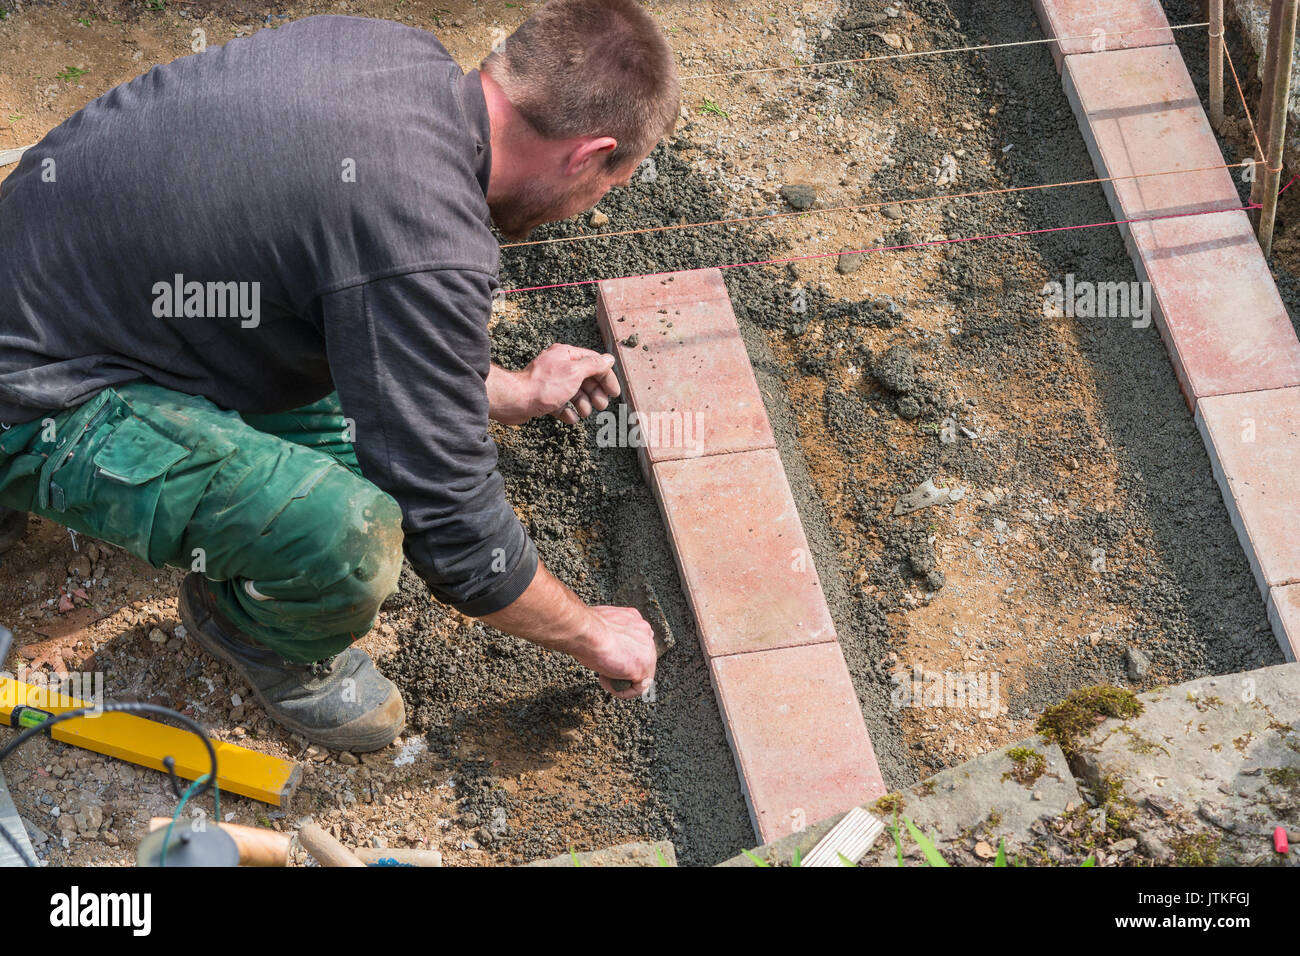 Workers in advance for laying paving stones and bricks. Various tools in the background. - Stock Image